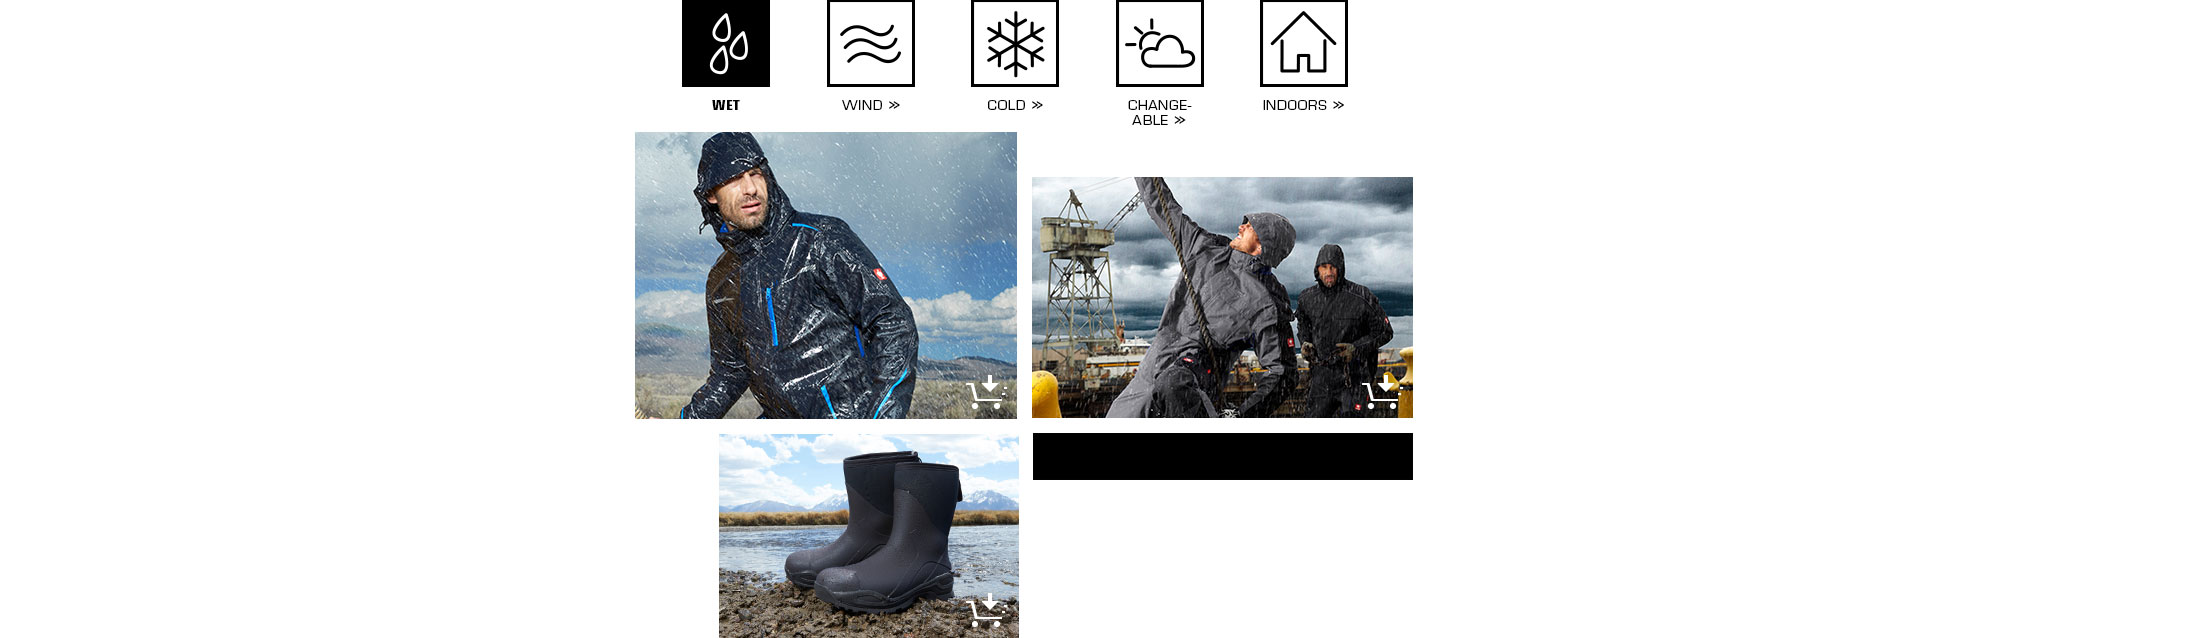 engelbert strauss workwear protects against the wet